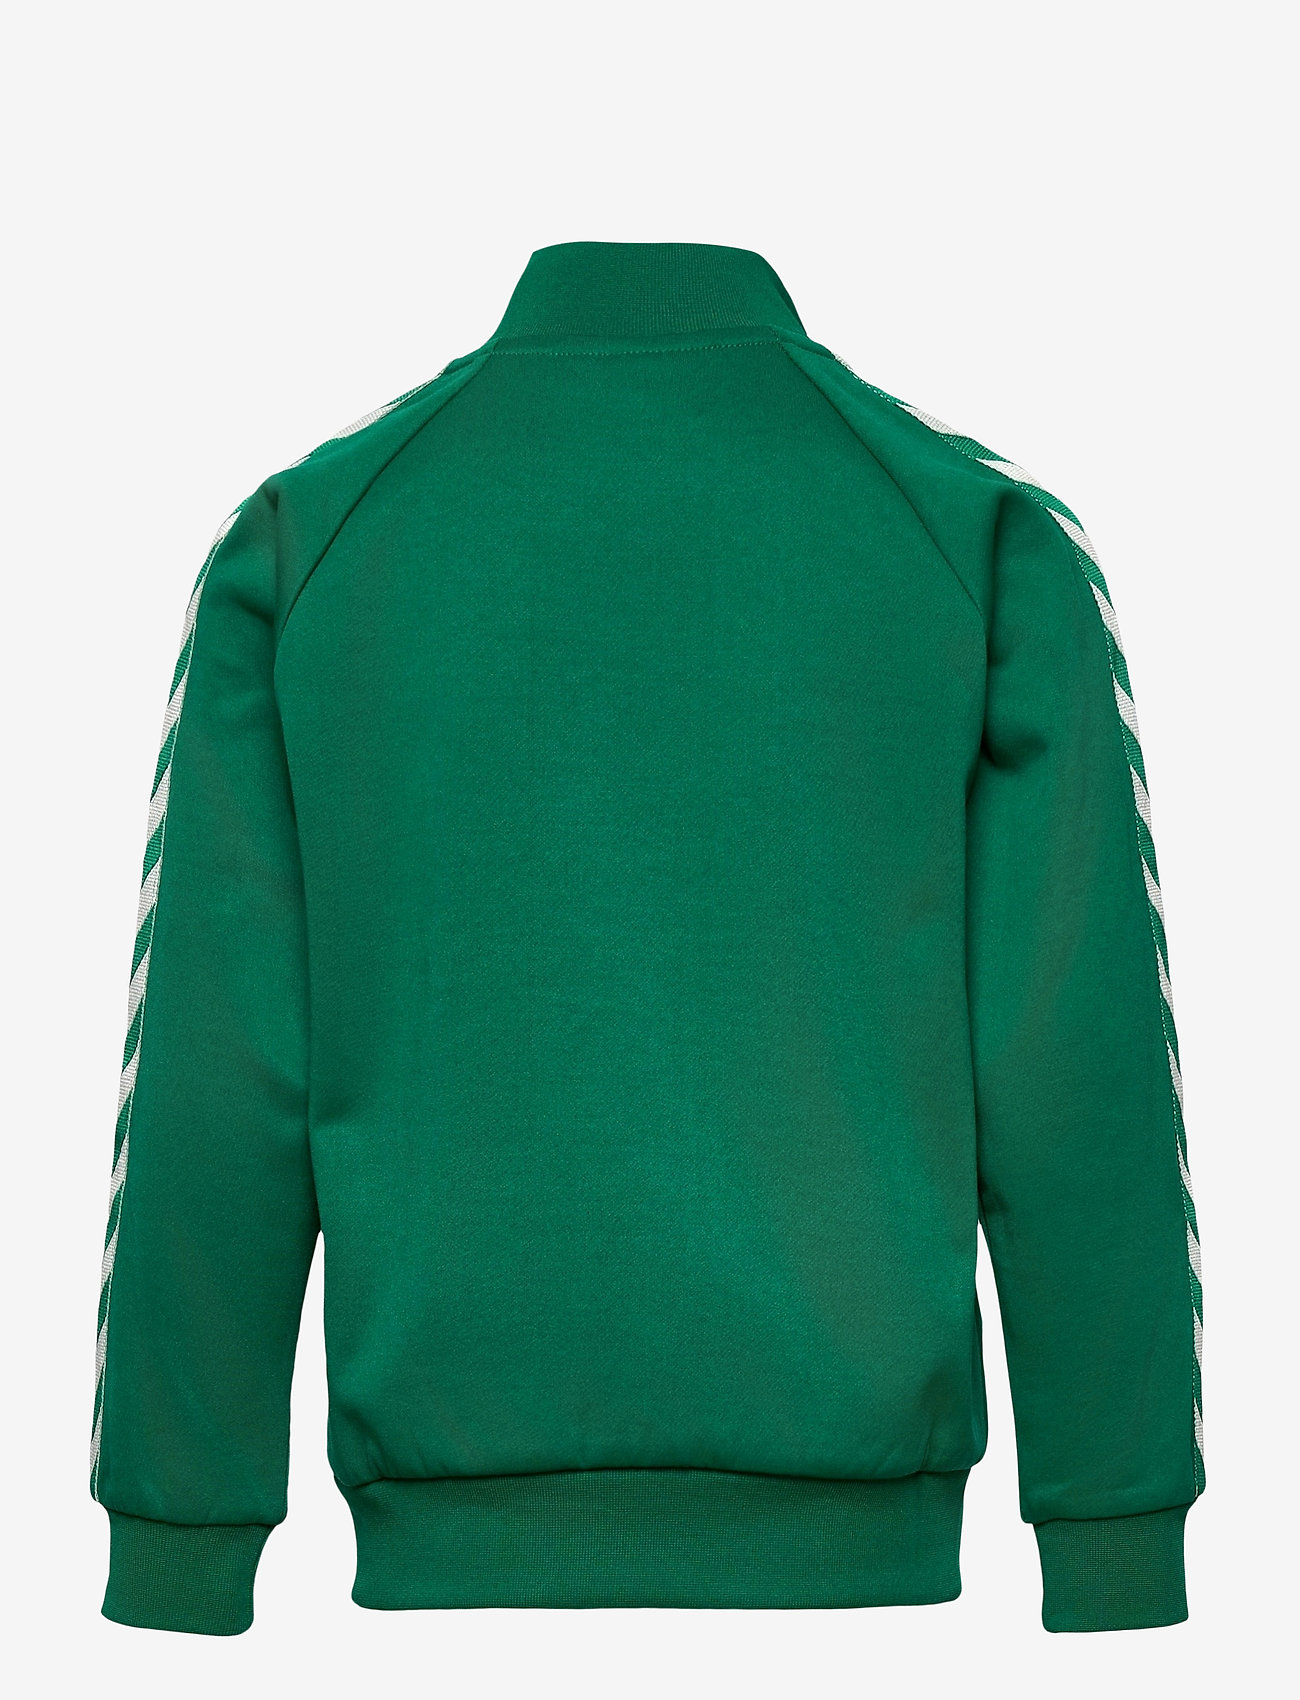 Hummel - HMLKICK ZIP JACKET - sweatshirts - ultramarine green - 1